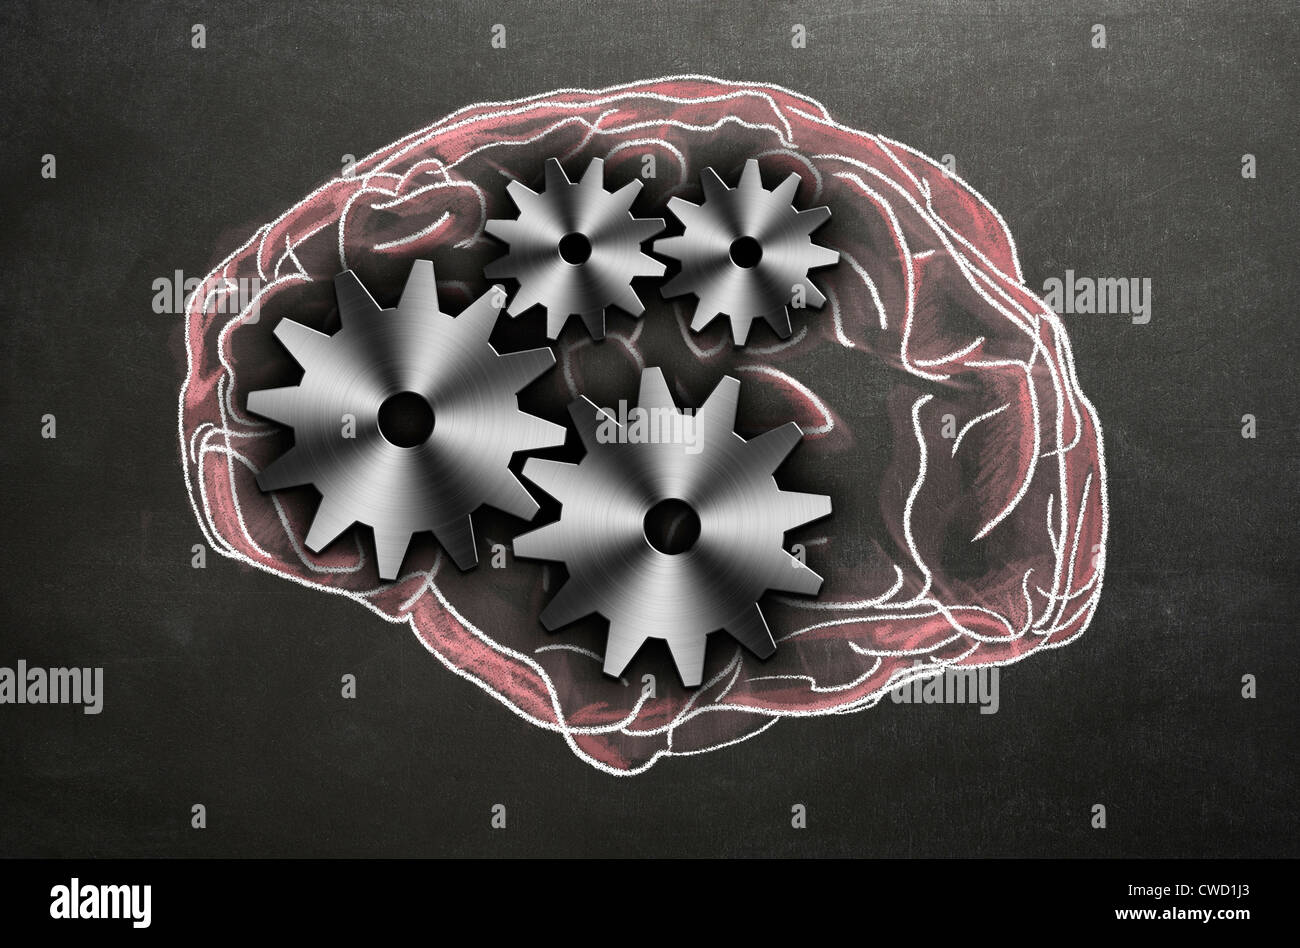 Chalk illustration of the human brain with cogs and gears representing the inner workings. Concept image - Stock Image